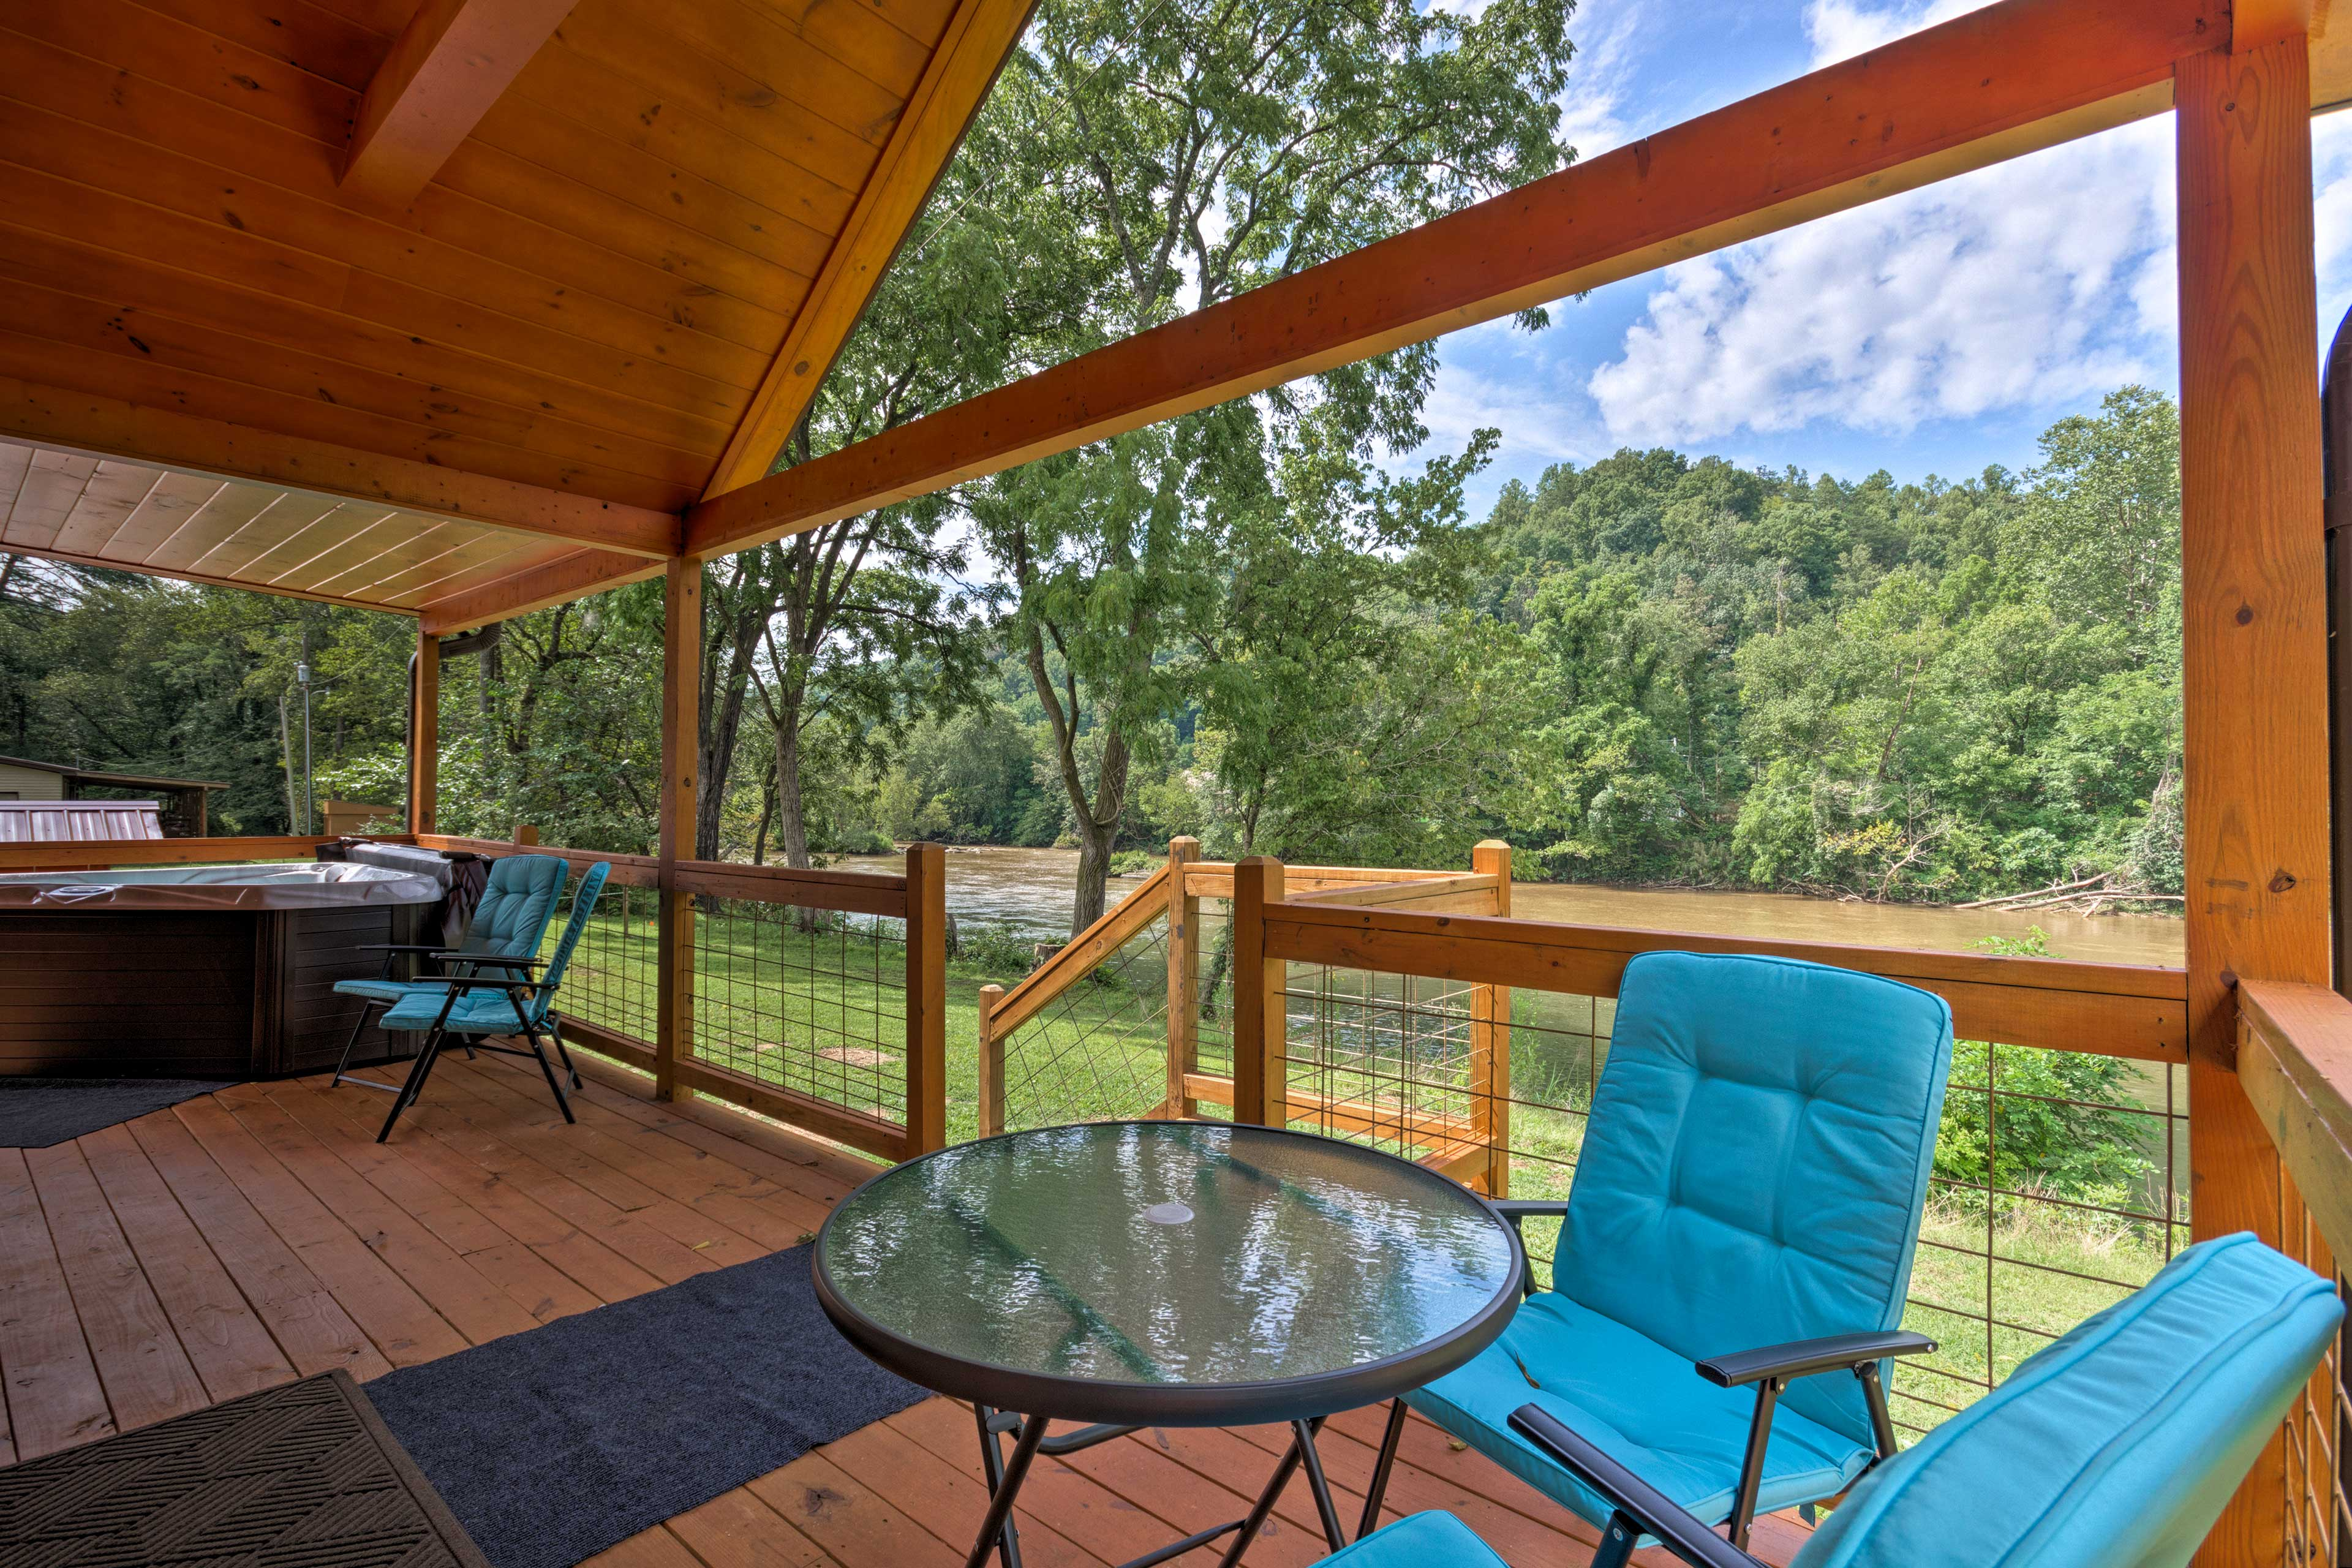 Located in Bryson City, this riverfront home is minutes from hiking and fishing.